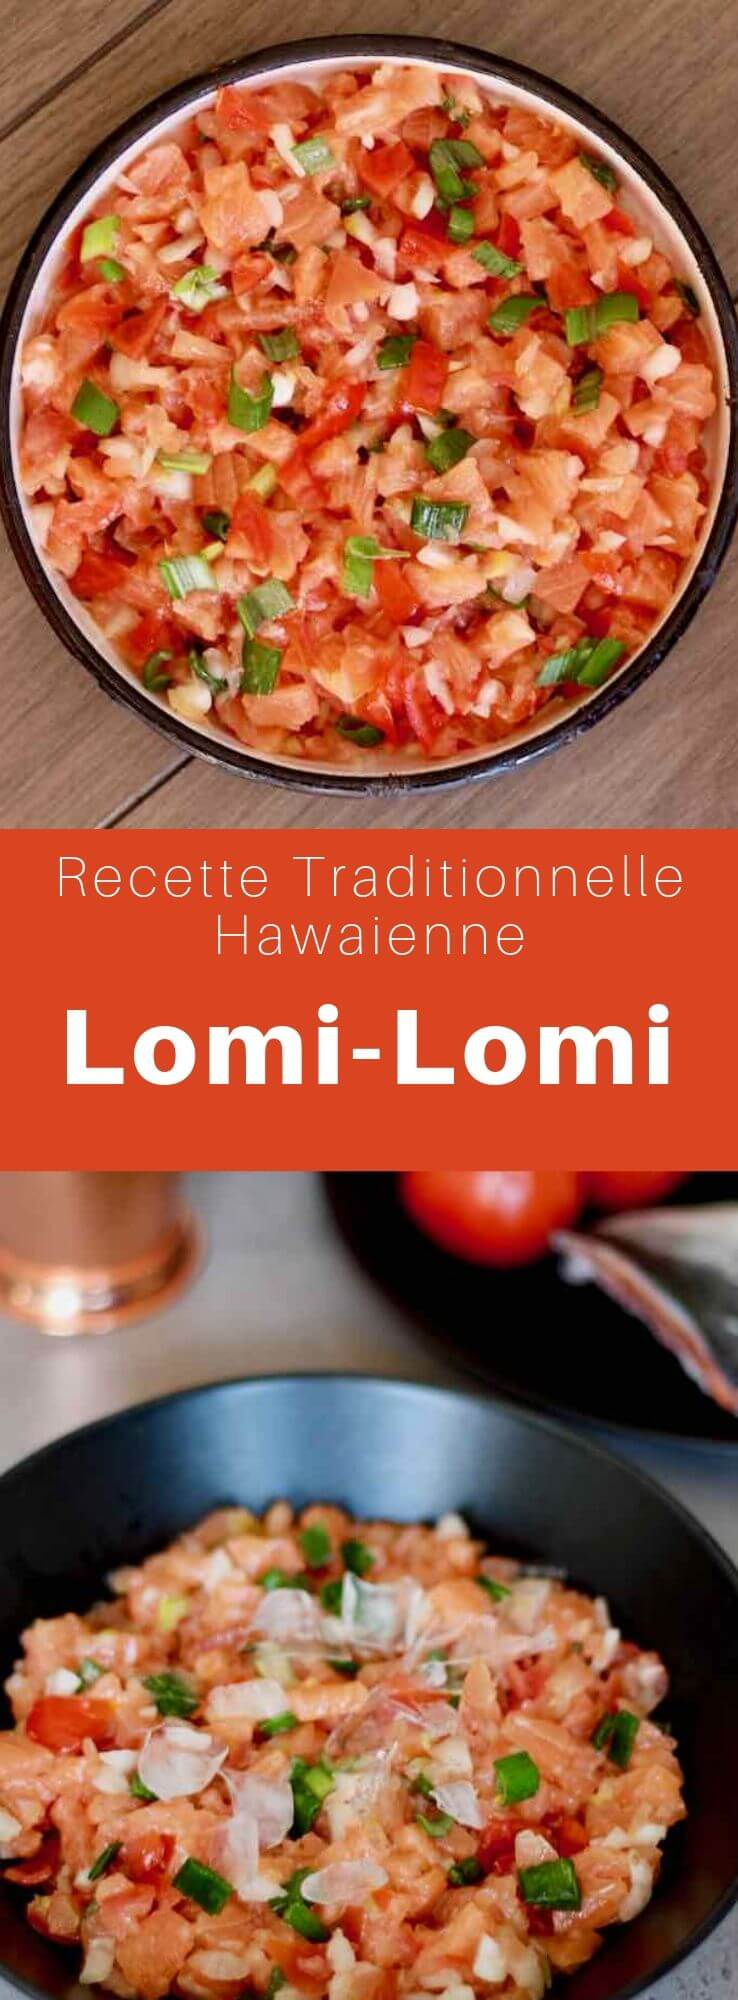 Le lomi-lomi est un plat traditionnel hawaïen préparé avec du saumon et des tomates. Il a été introduit à Hawaii par les premiers explorateurs occidentaux. #Hawai #RecetteHawaienne #CuisineHawaienne #CuisineDuMonde #196flavors